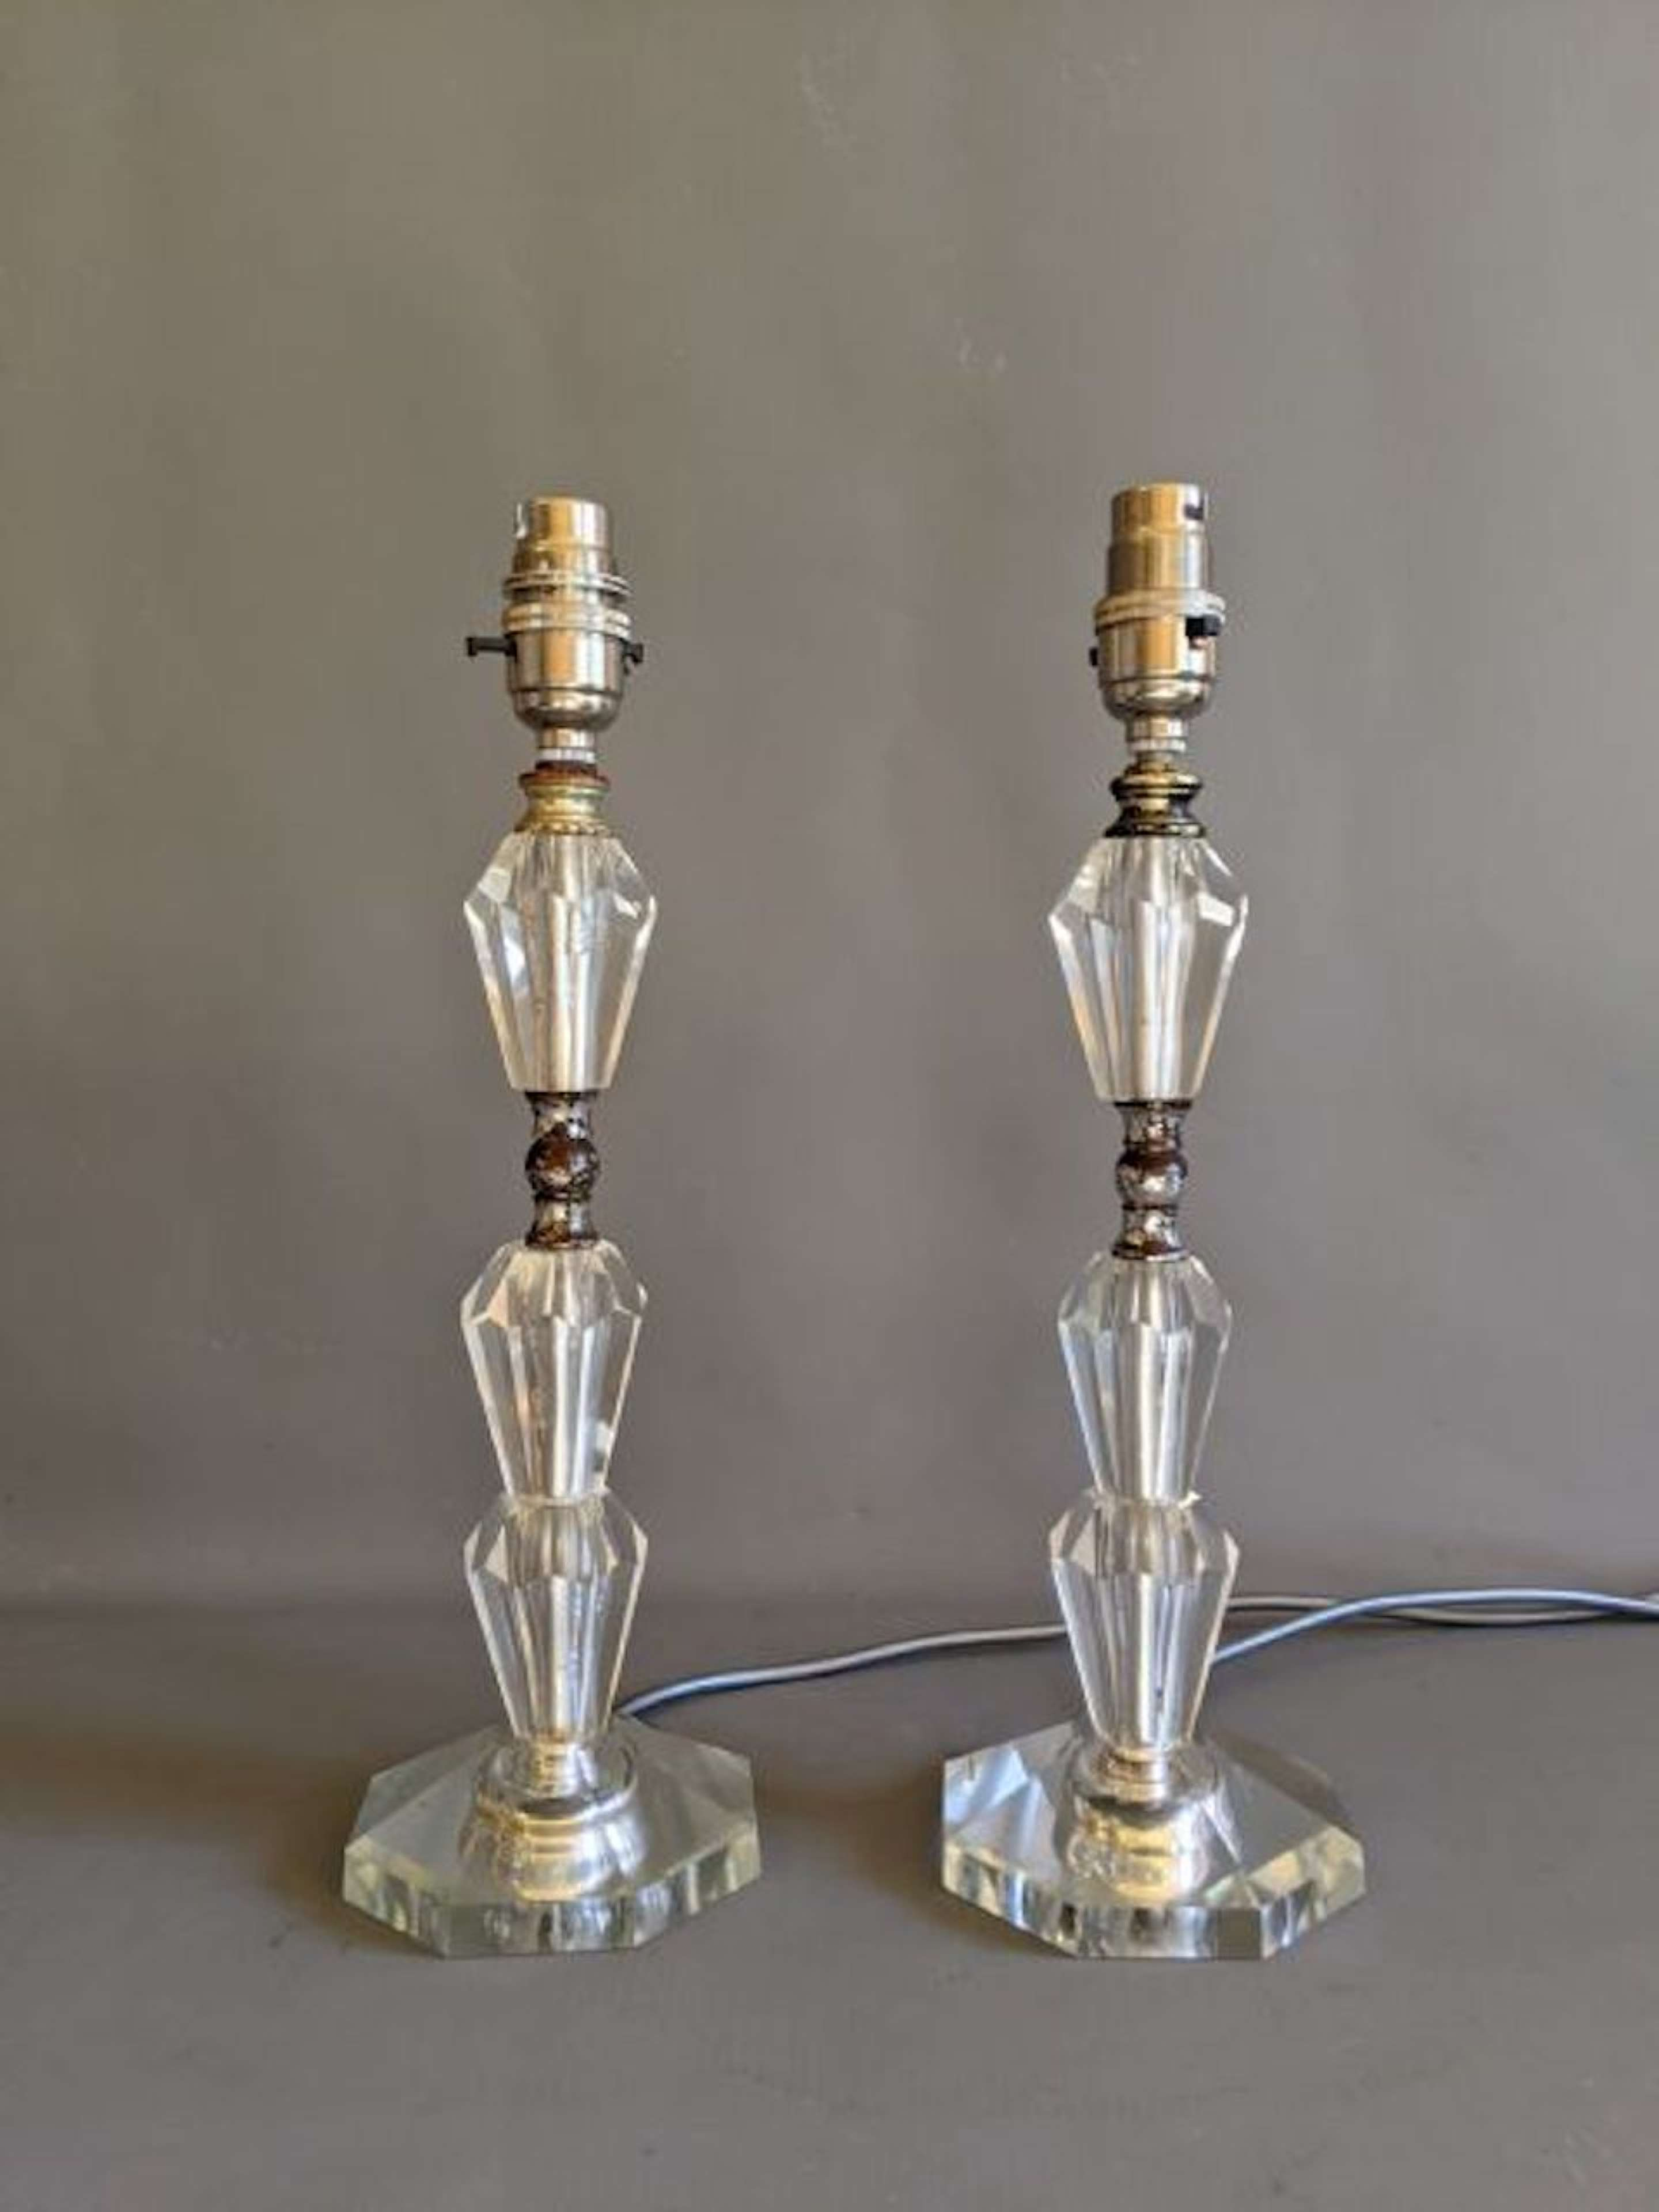 Pair of Art Deco style Glass Table Lamps